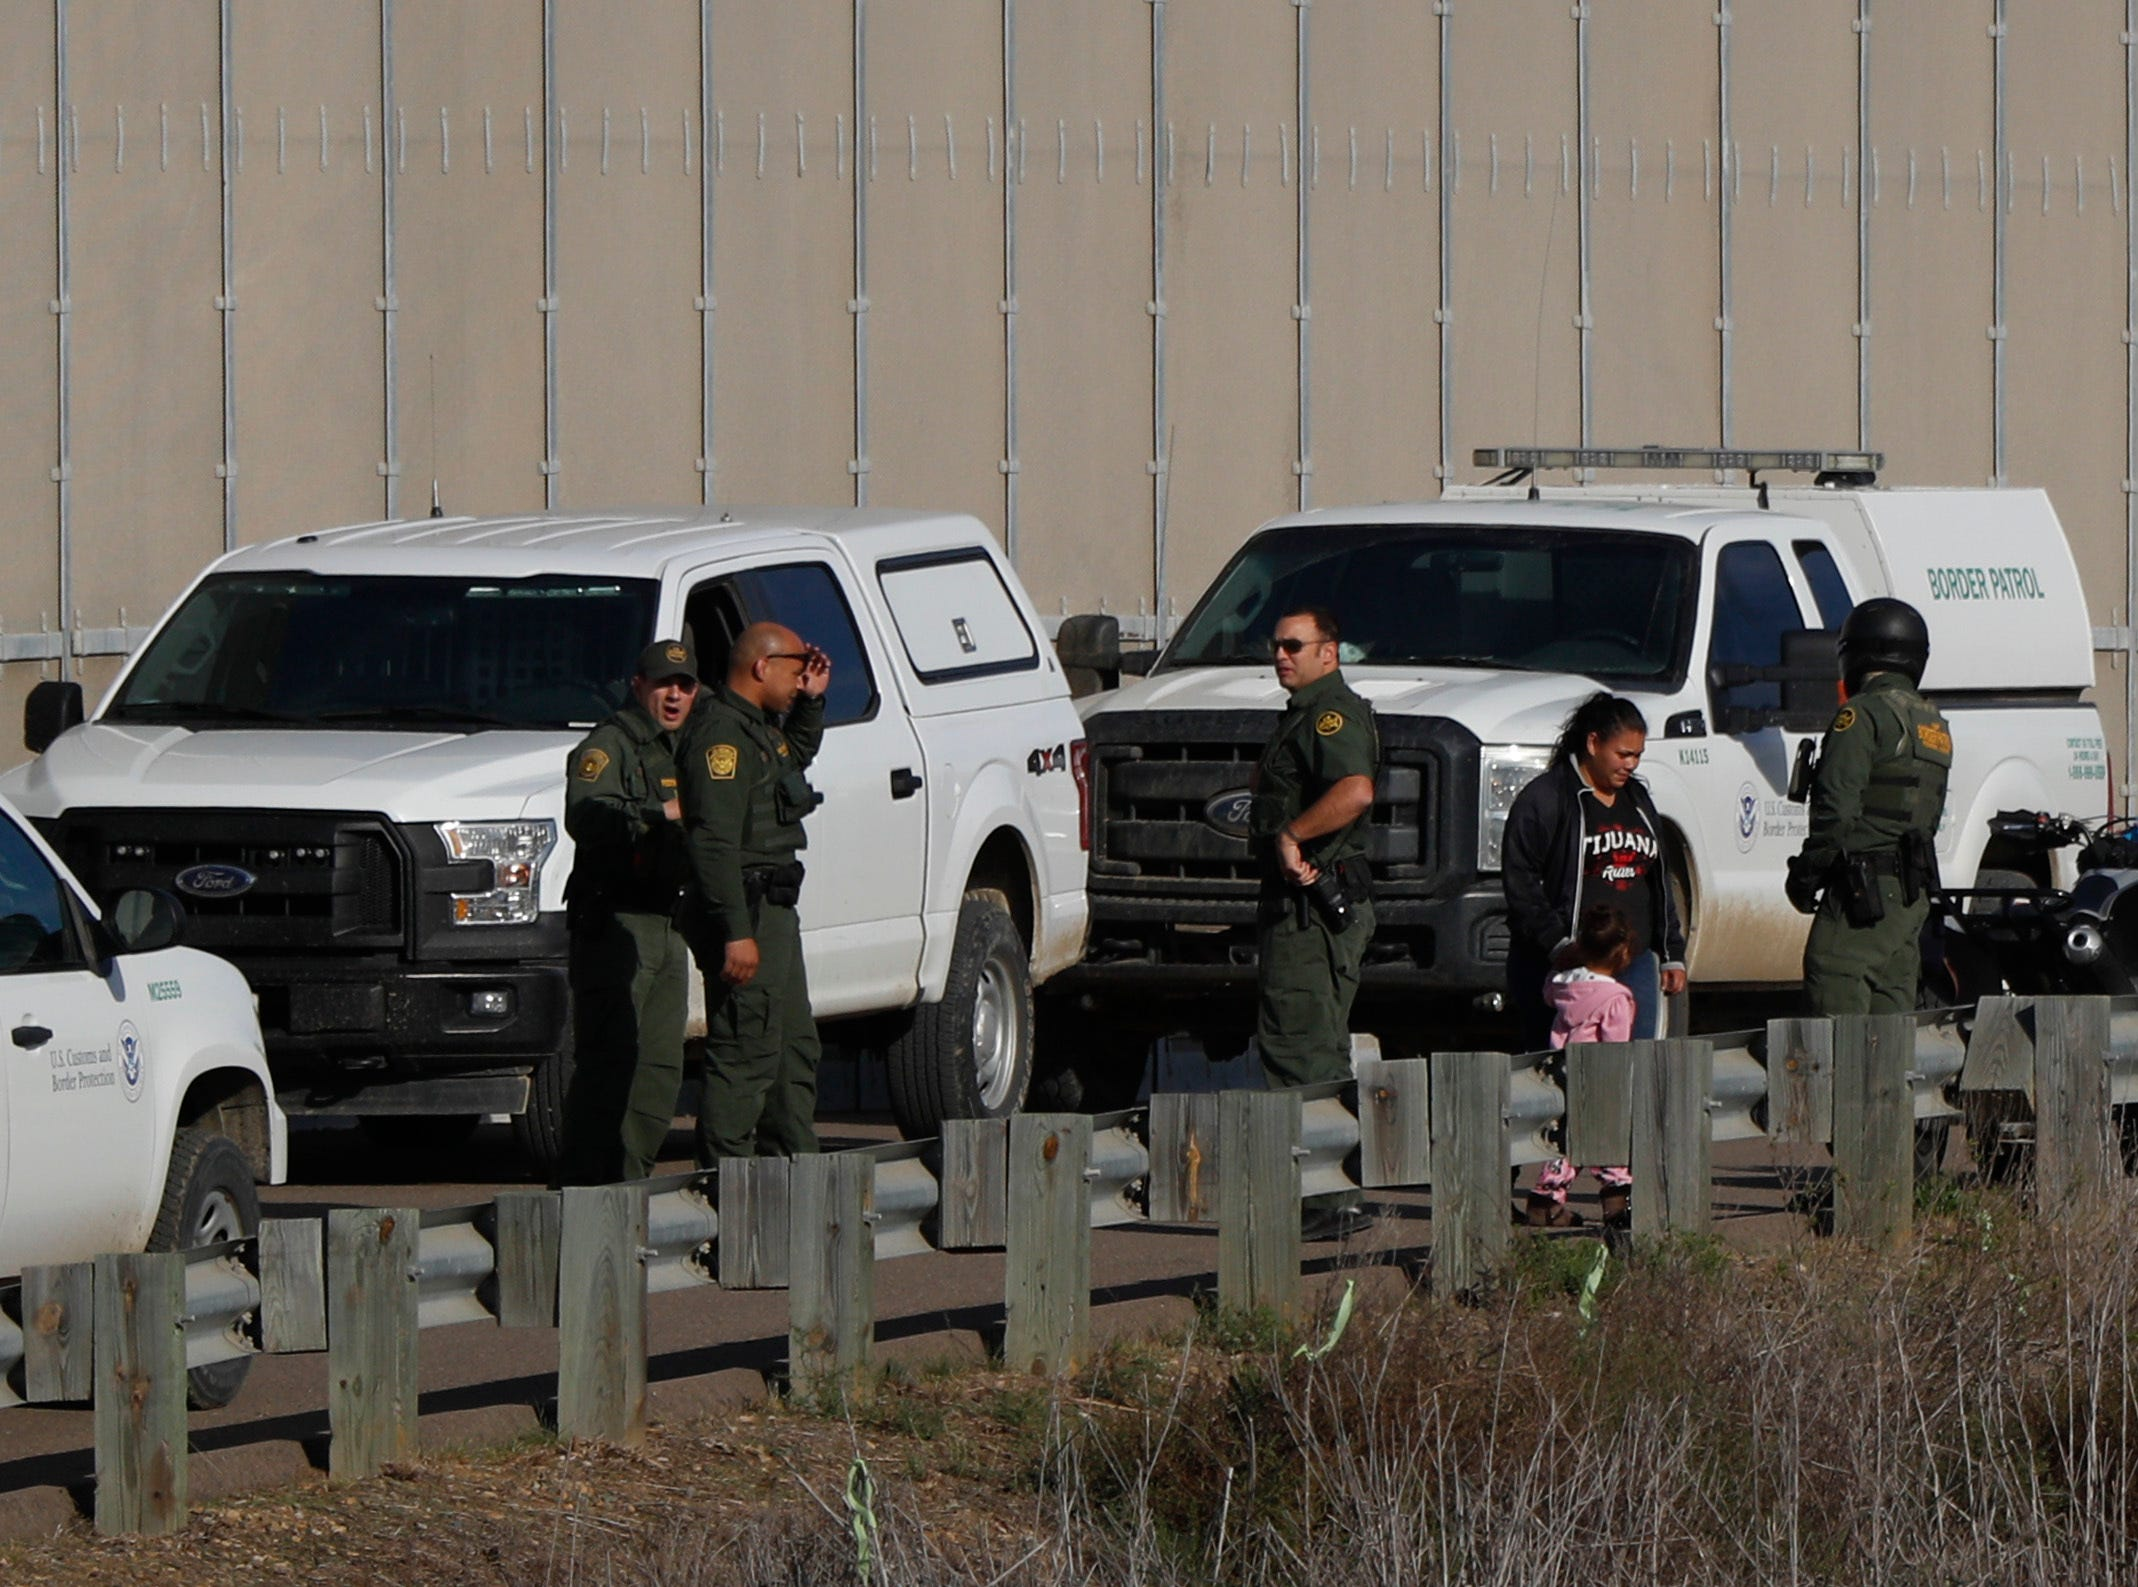 Honduran migrant Rachel Rivera, 19, and her 3-year-old daughter Charlot Andrea are detained by U.S. border patrol after they crossed under the U.S. border wall from Playas de Tijuana, Mexico, Tuesday, Dec. 4, 2018. Weeping as she stayed behind in Tijuana with her Mexican husband, Rivera's mother Yesenia said her daughter and granddaughter had joined the migrant caravan to flee an abusive husband back in Honduras.